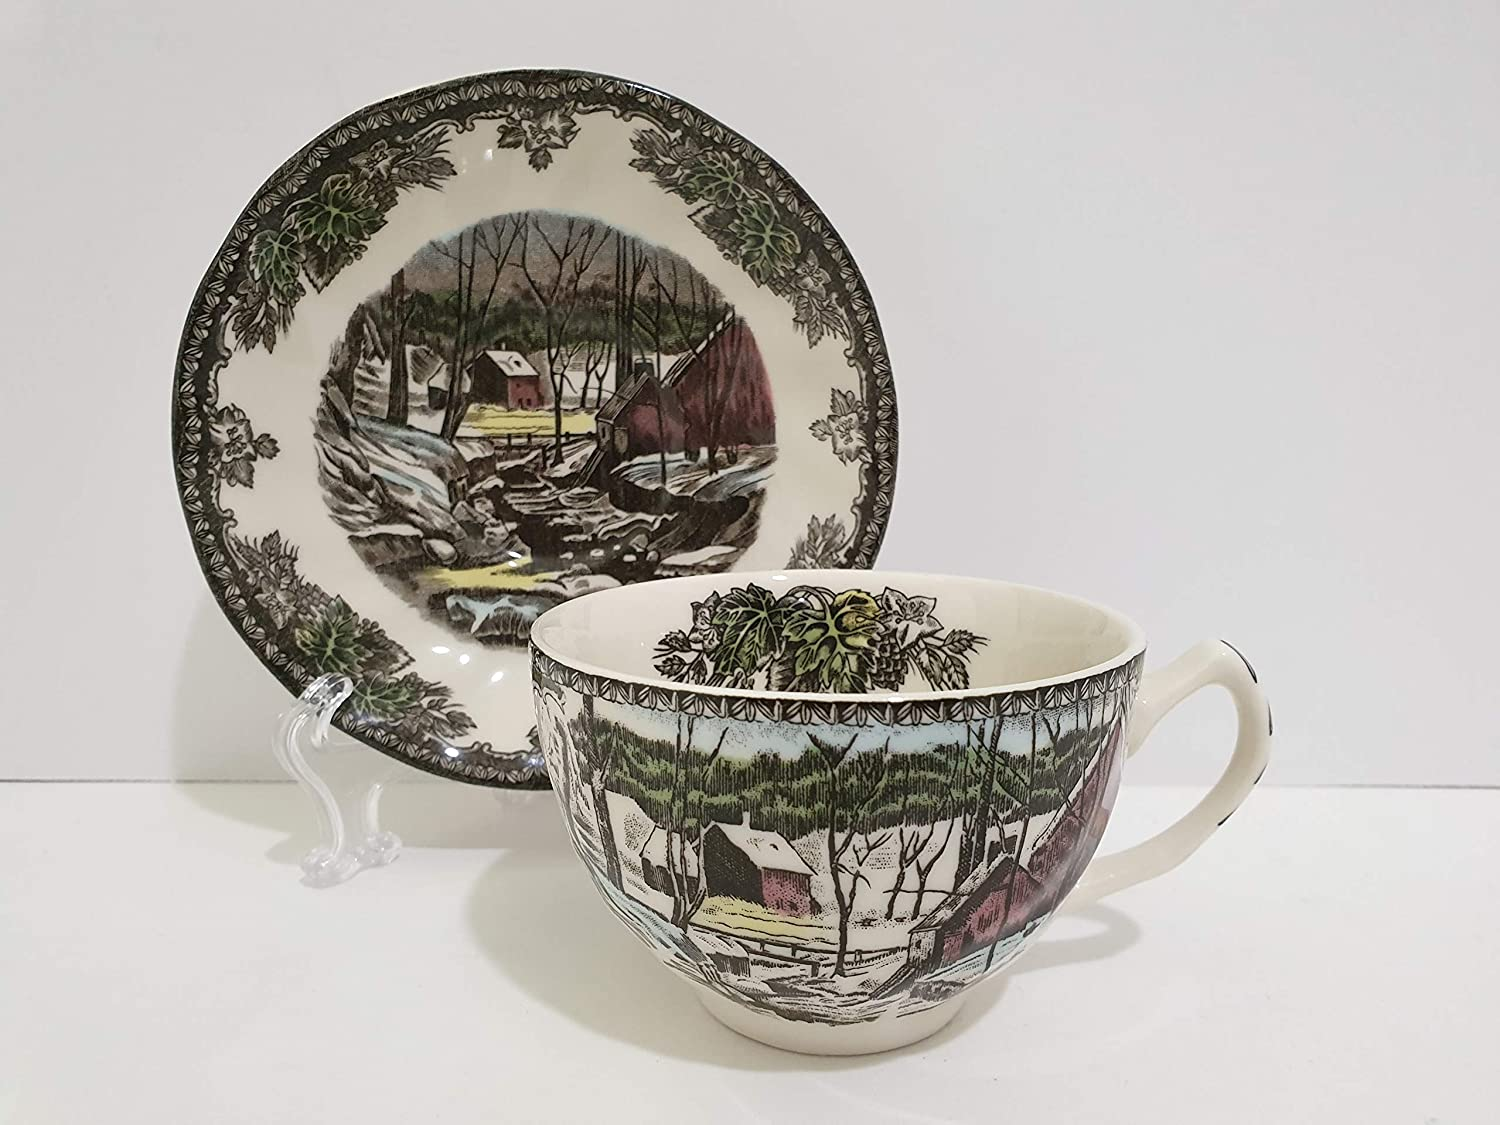 Johnson Brothers Max 71% OFF THE FRIENDLY Max 51% OFF VILLAGE 1883 S CupSaucer ENGLAND